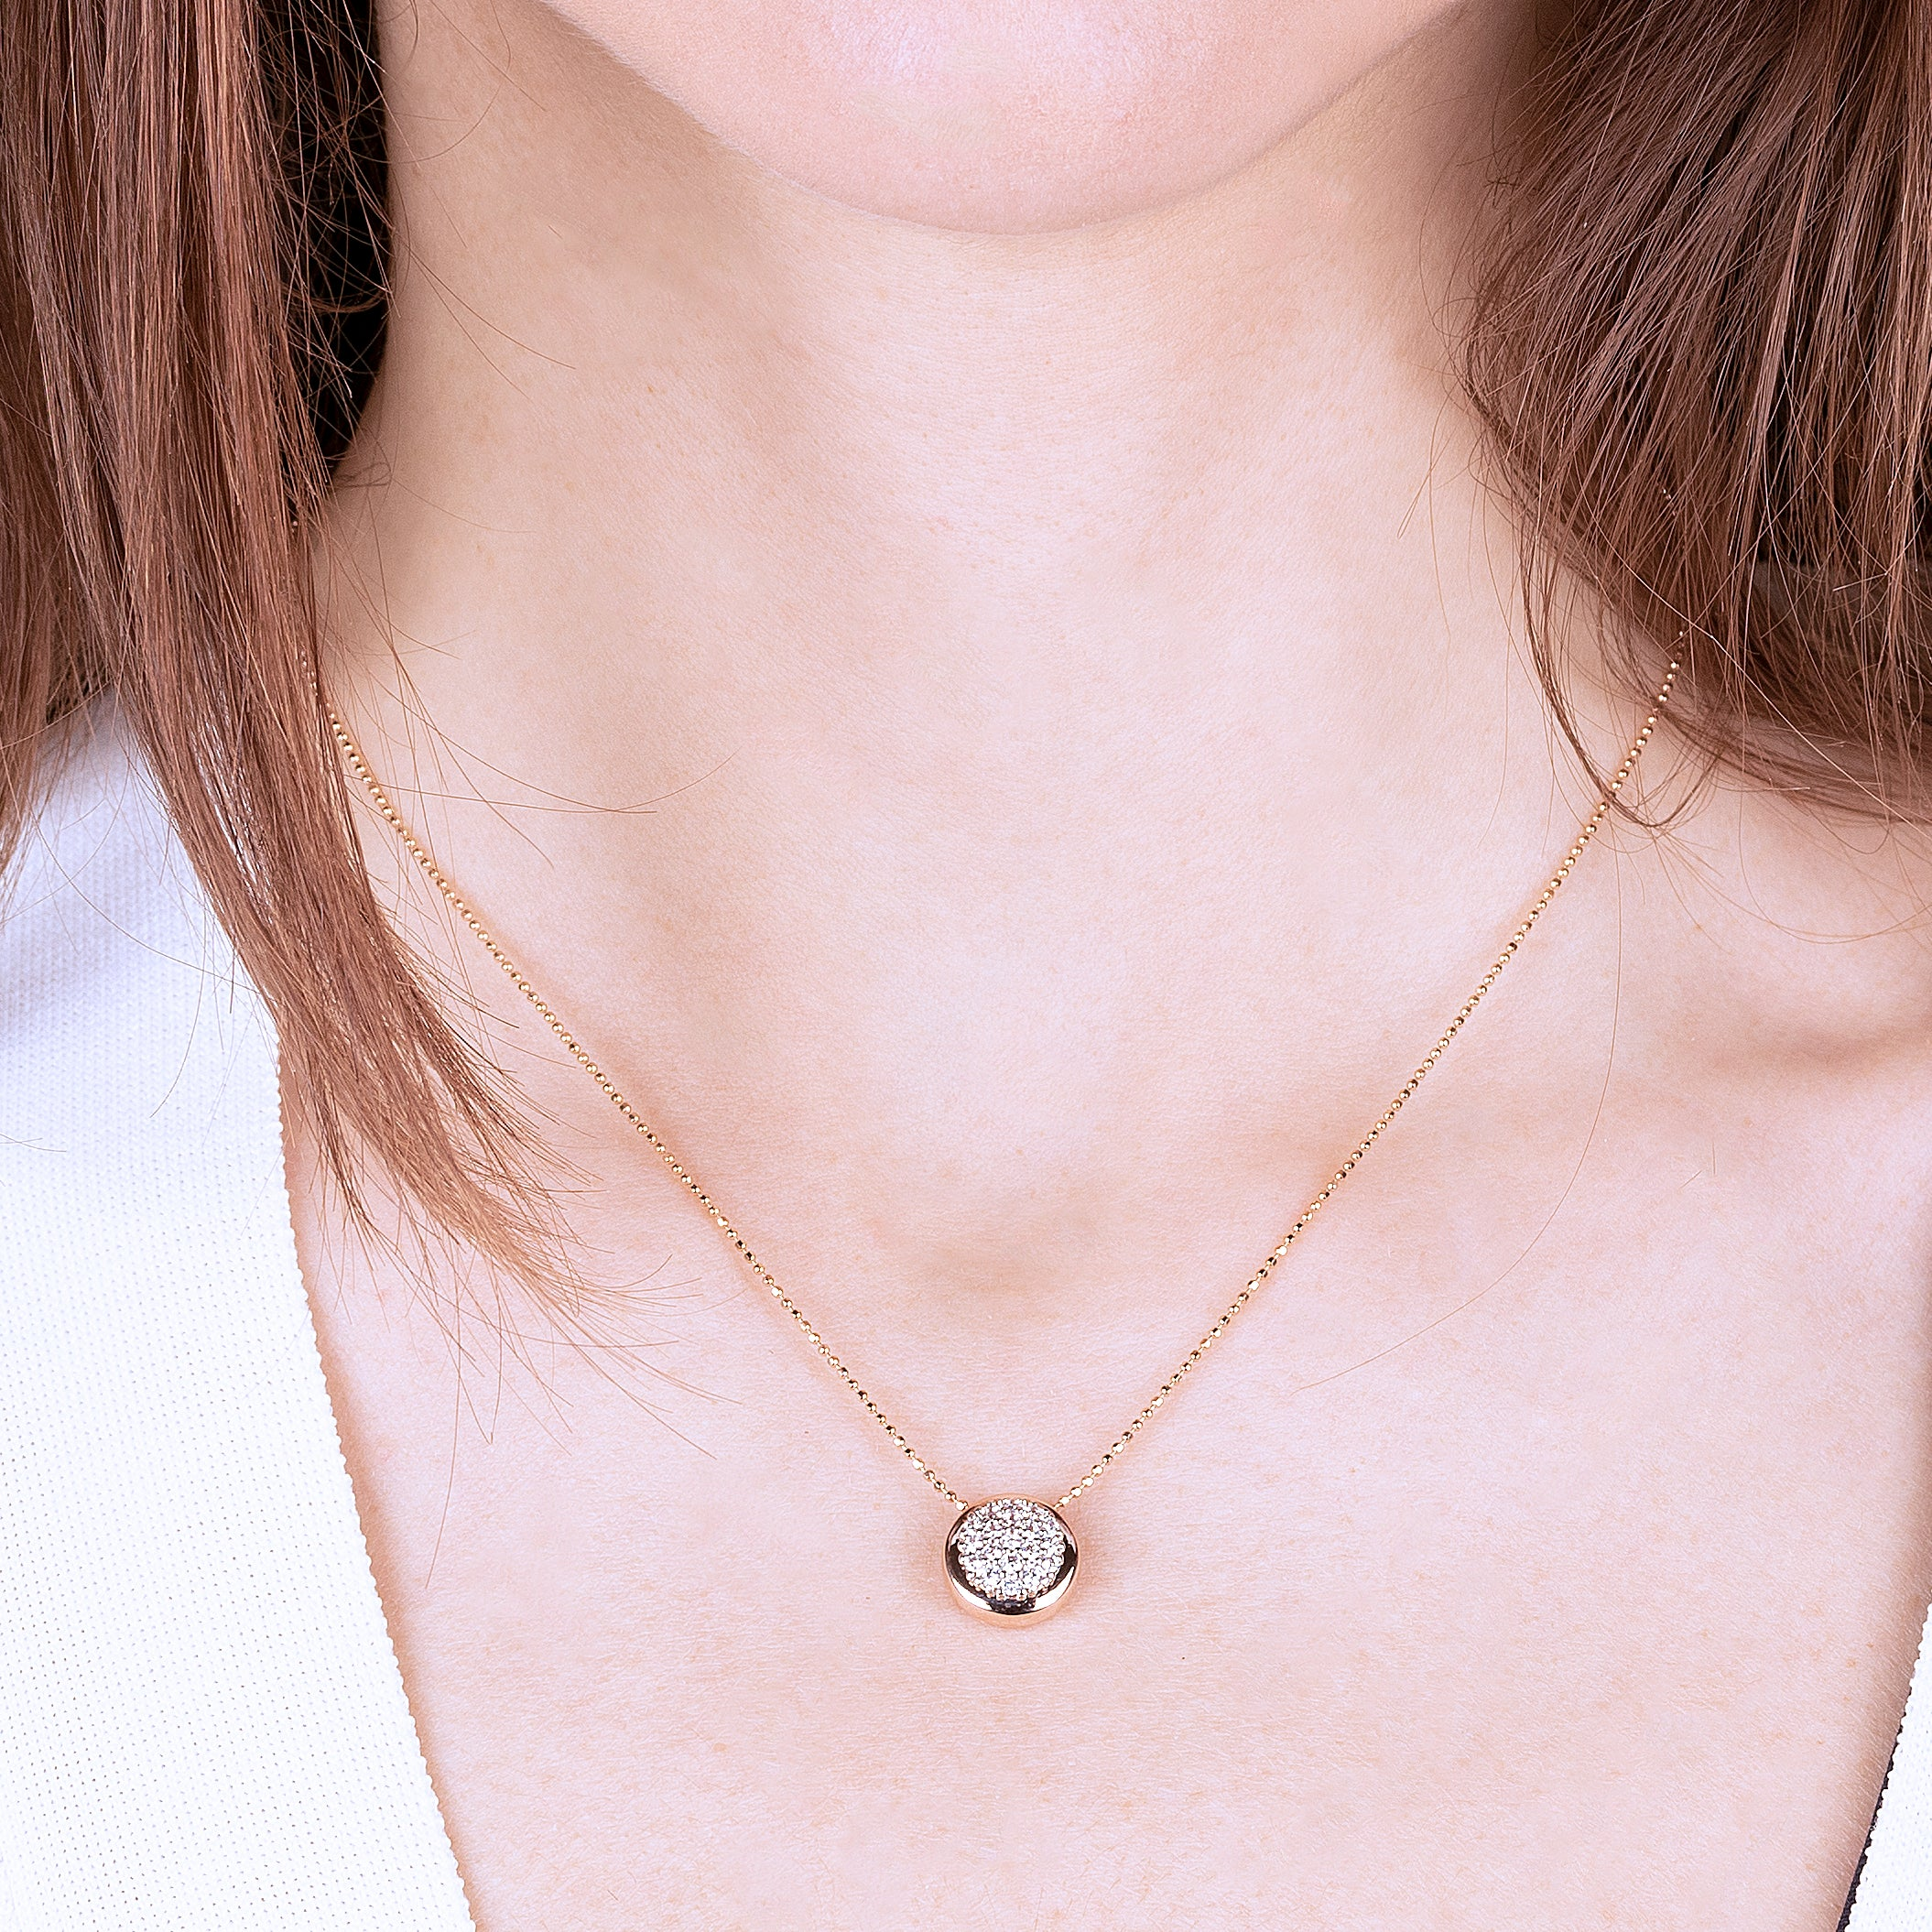 Round Pendant Necklace with Pavè CZ